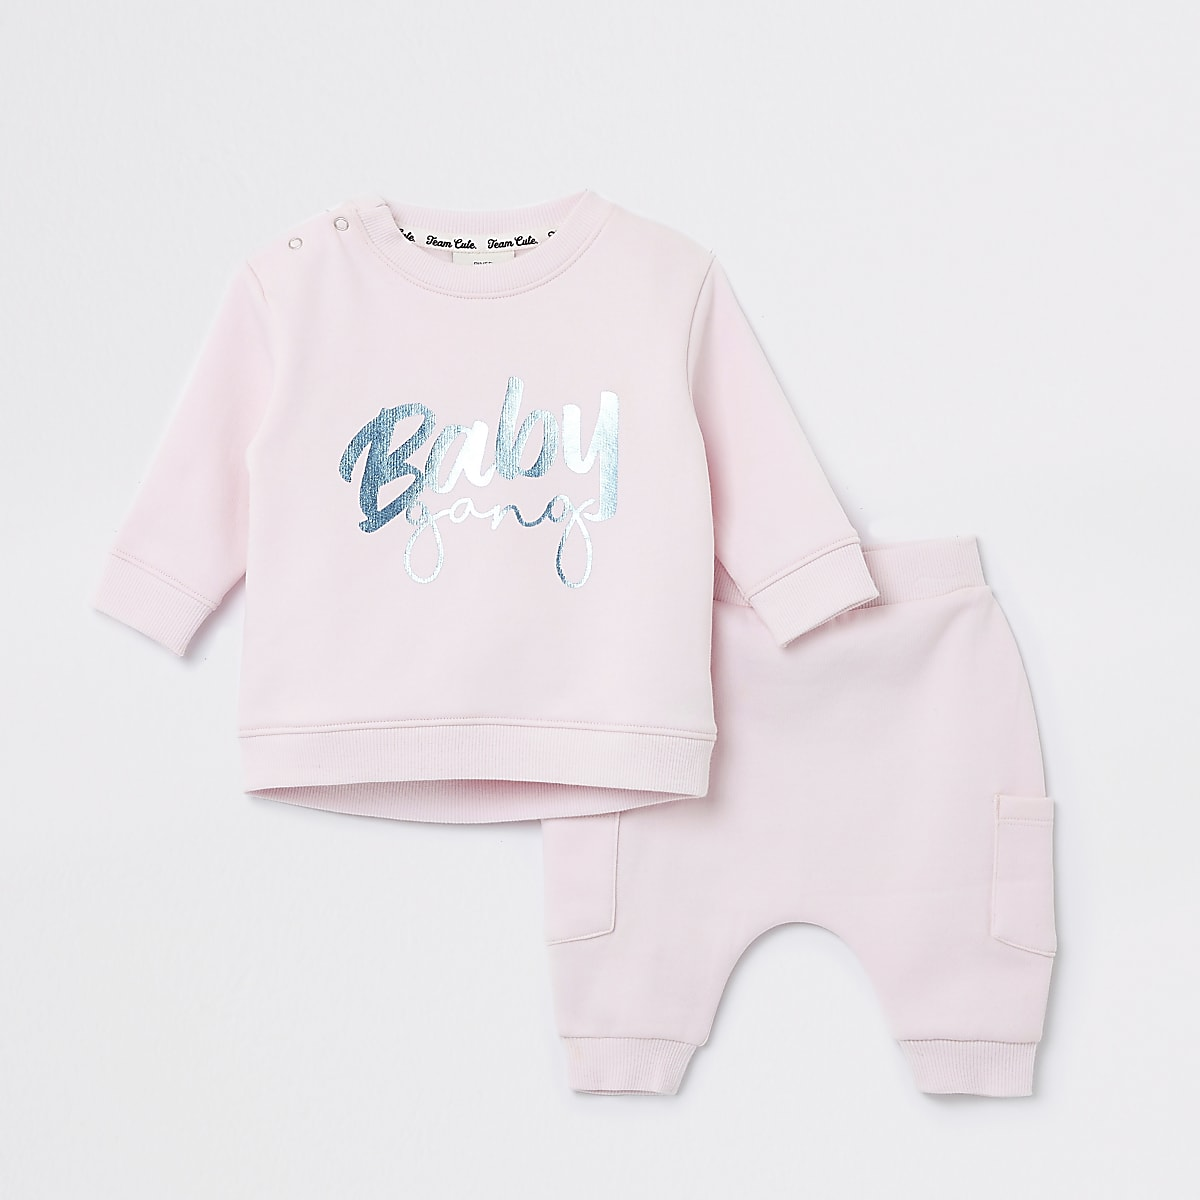 Baby pink 'Baby gang' sweatshirt outfit